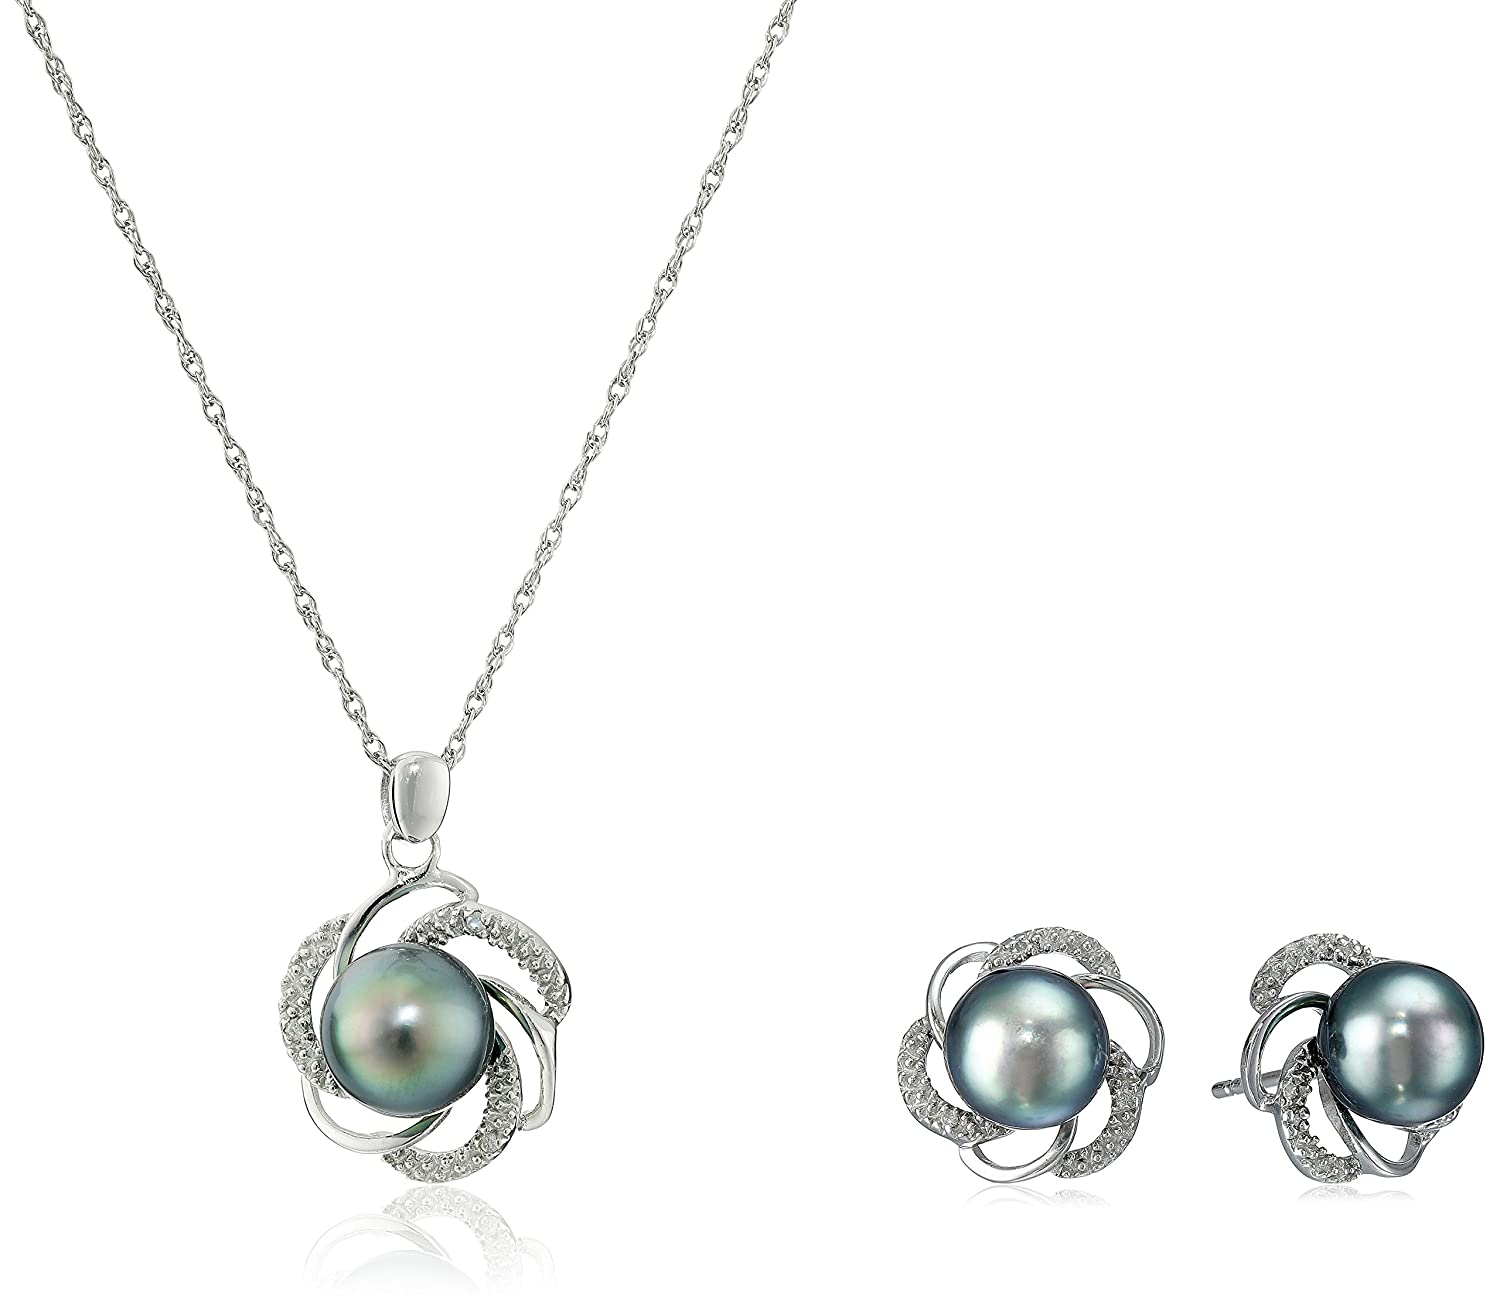 circa jewelersfrench necklace and sapphire french diamond product pearl tenenbaum